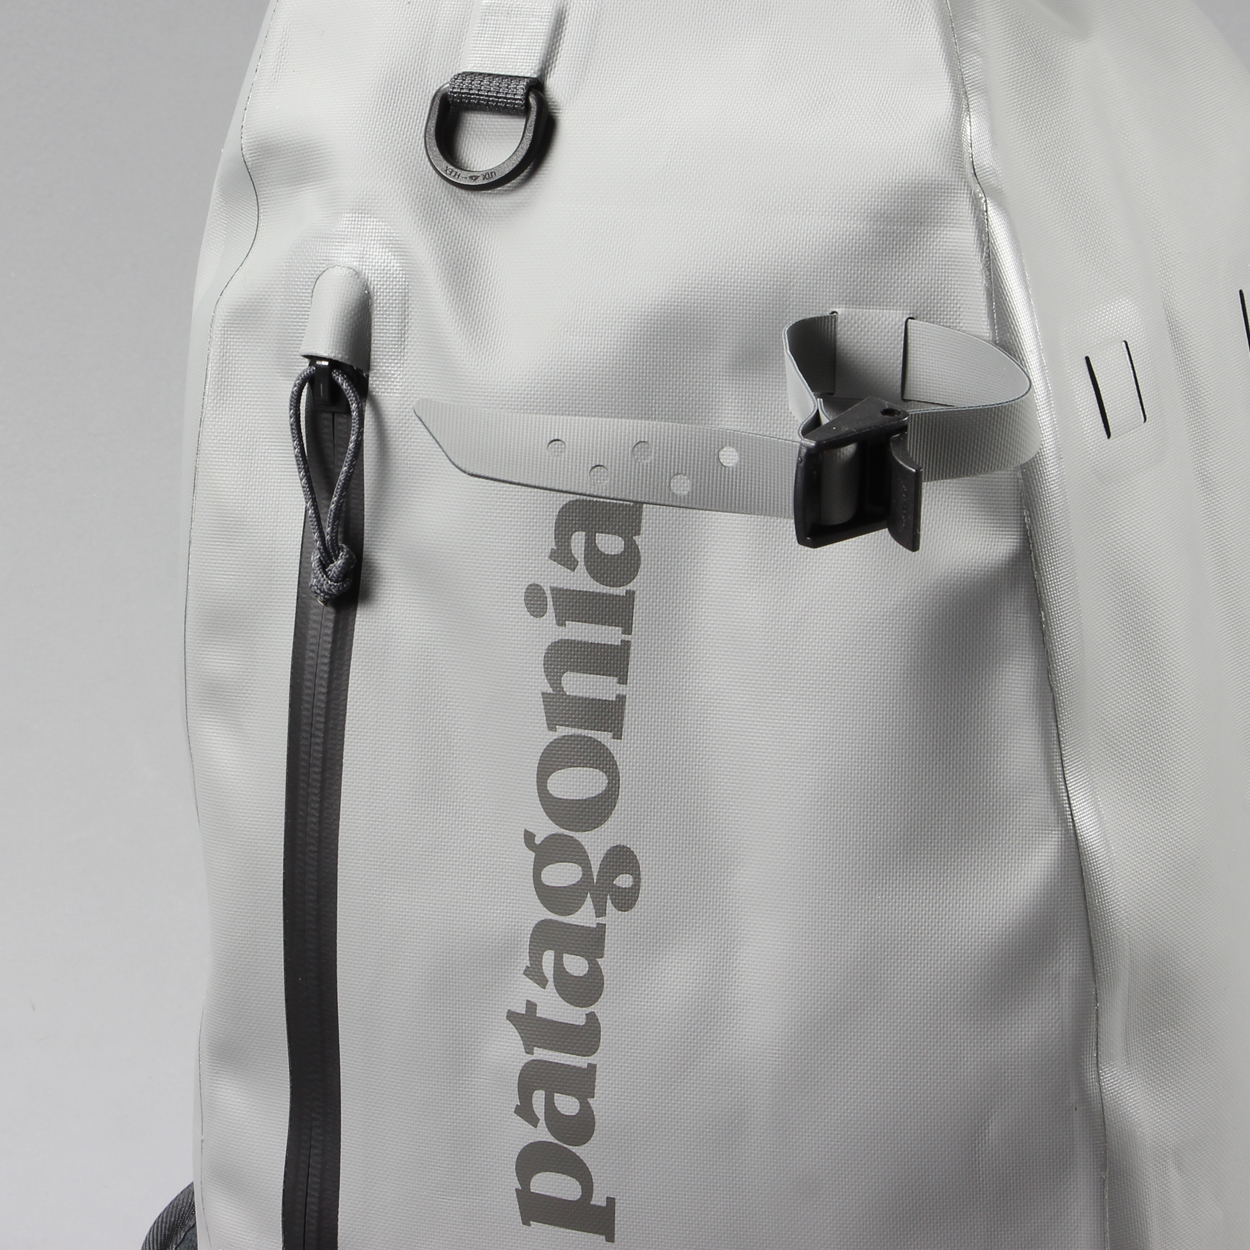 b9c1342025d Fully waterproof and ready for action with a 20 litre capacity, the Stormfront  Sling from Patagonia sits comfortably and keeps your gear close to hand and  ...